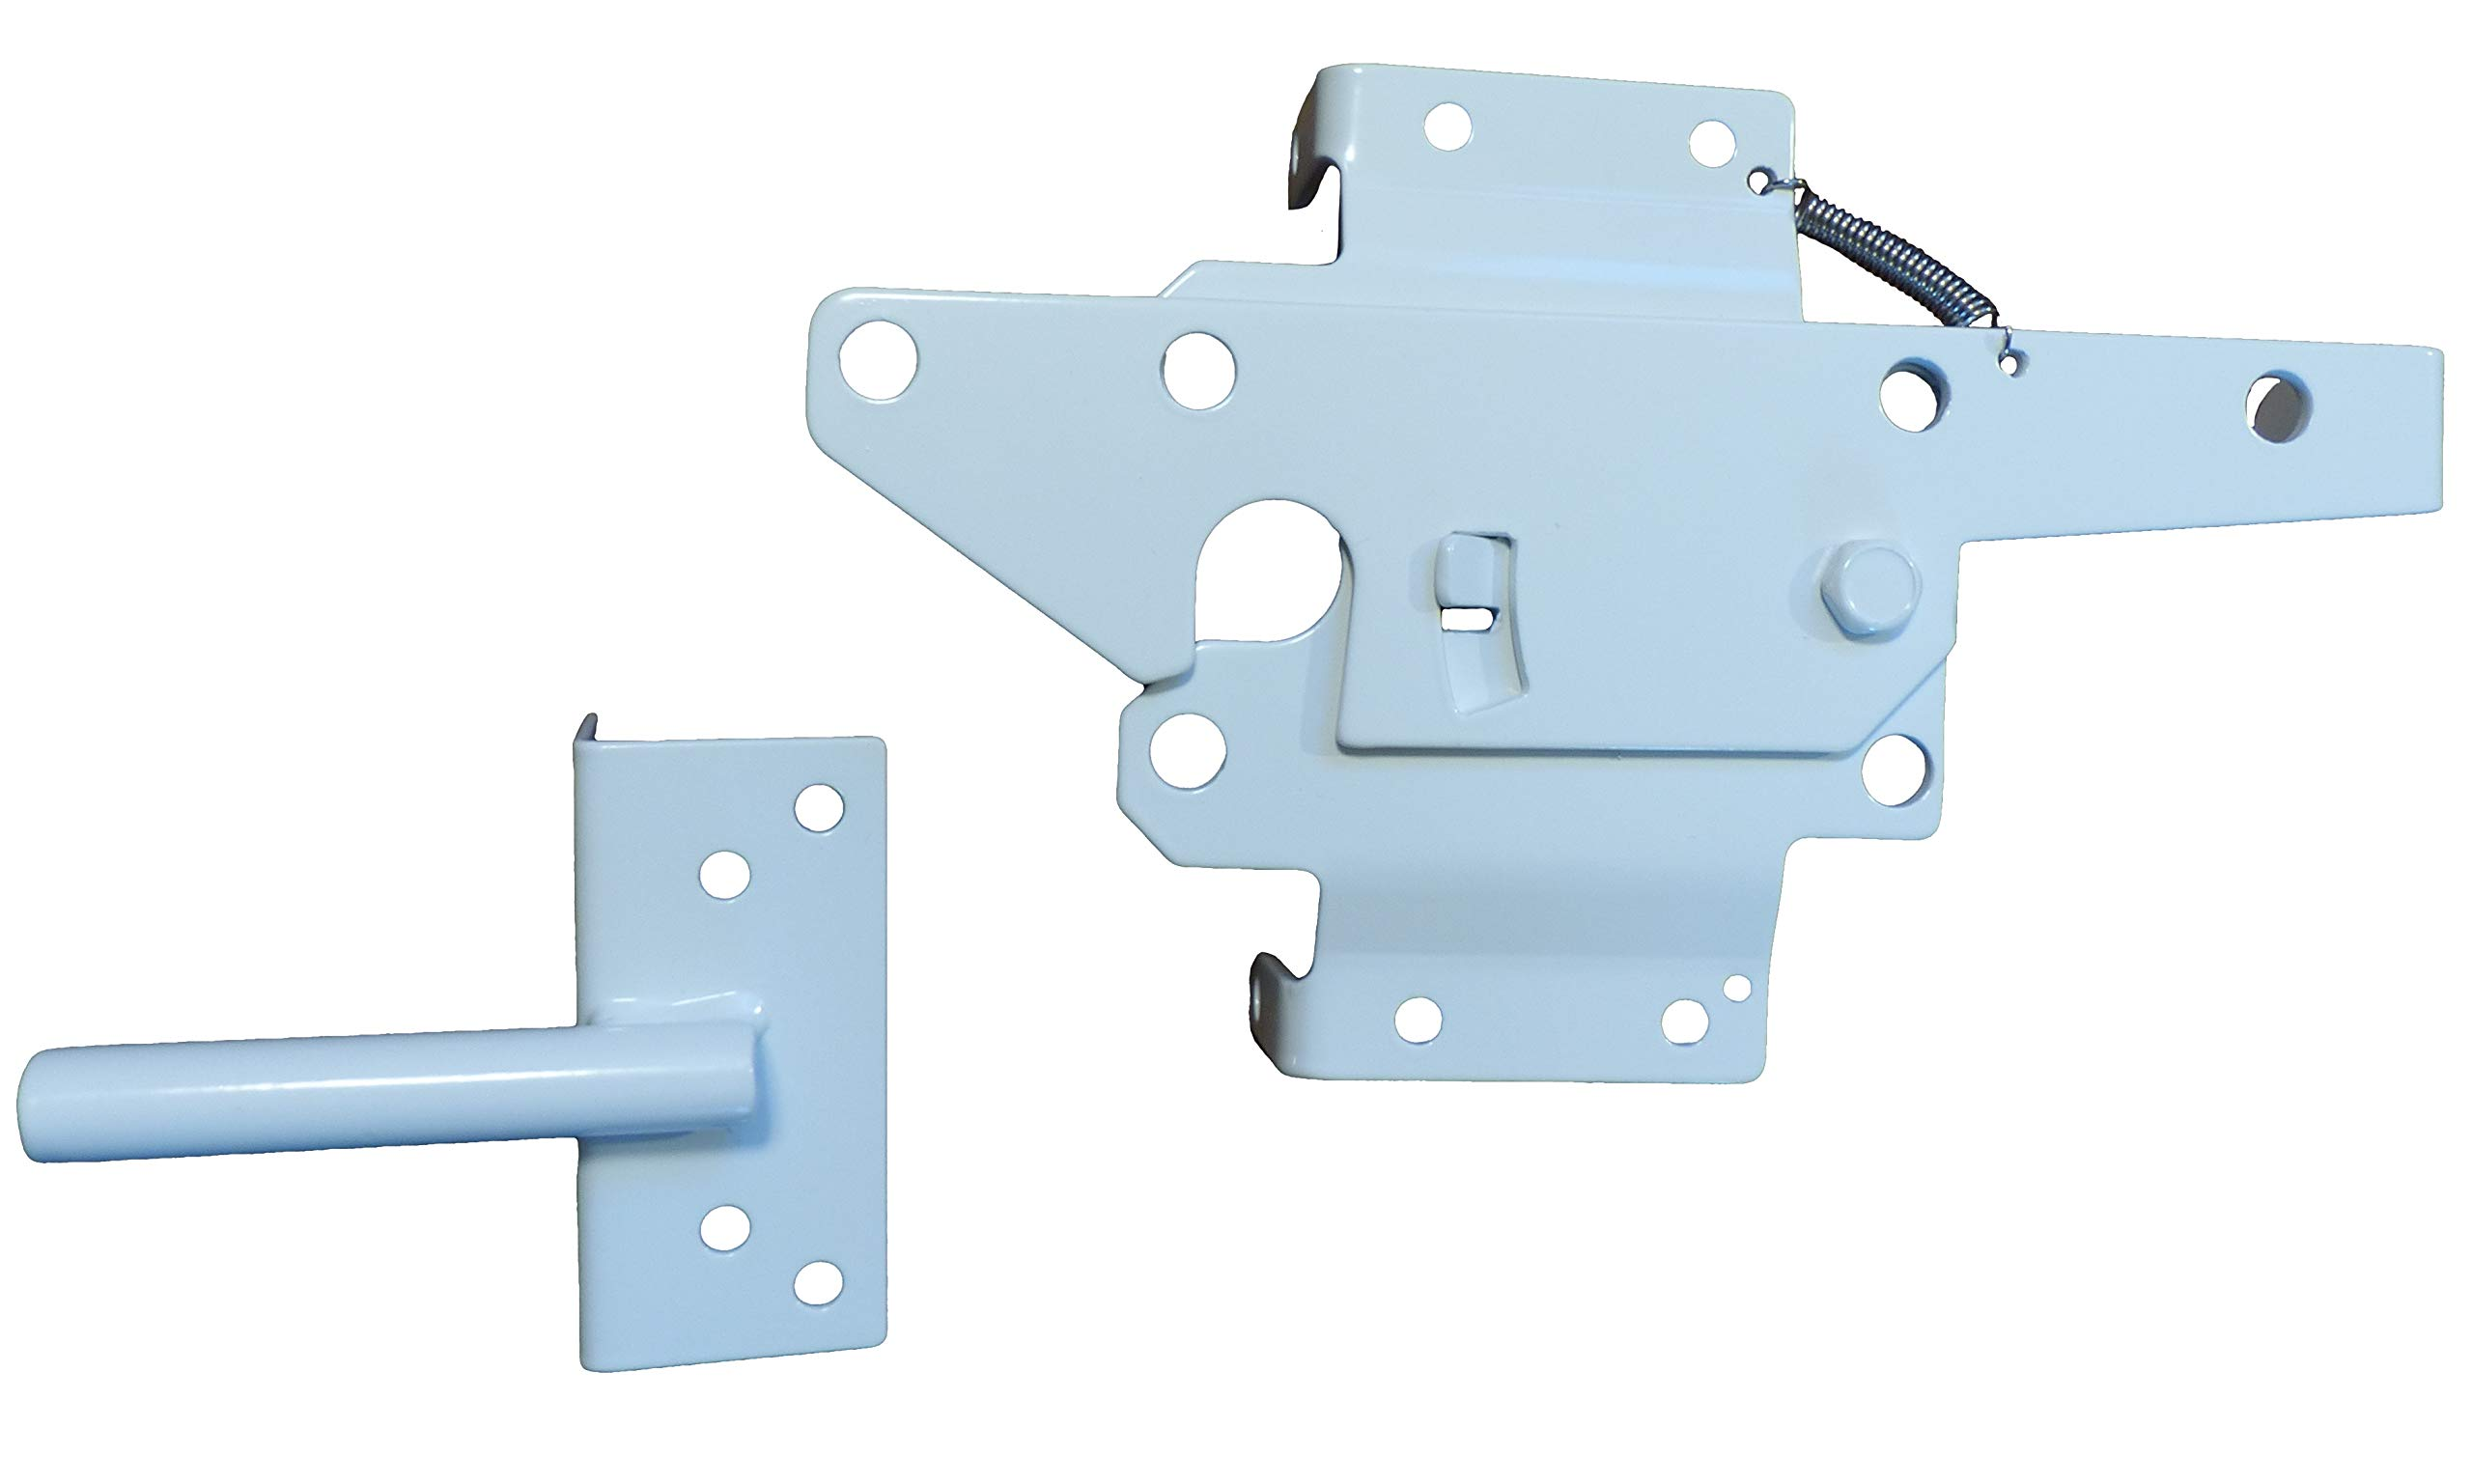 Post Mount Gate Latch (White Finish) | The Perfect Latch To Secure Your Pool and Yard (white)